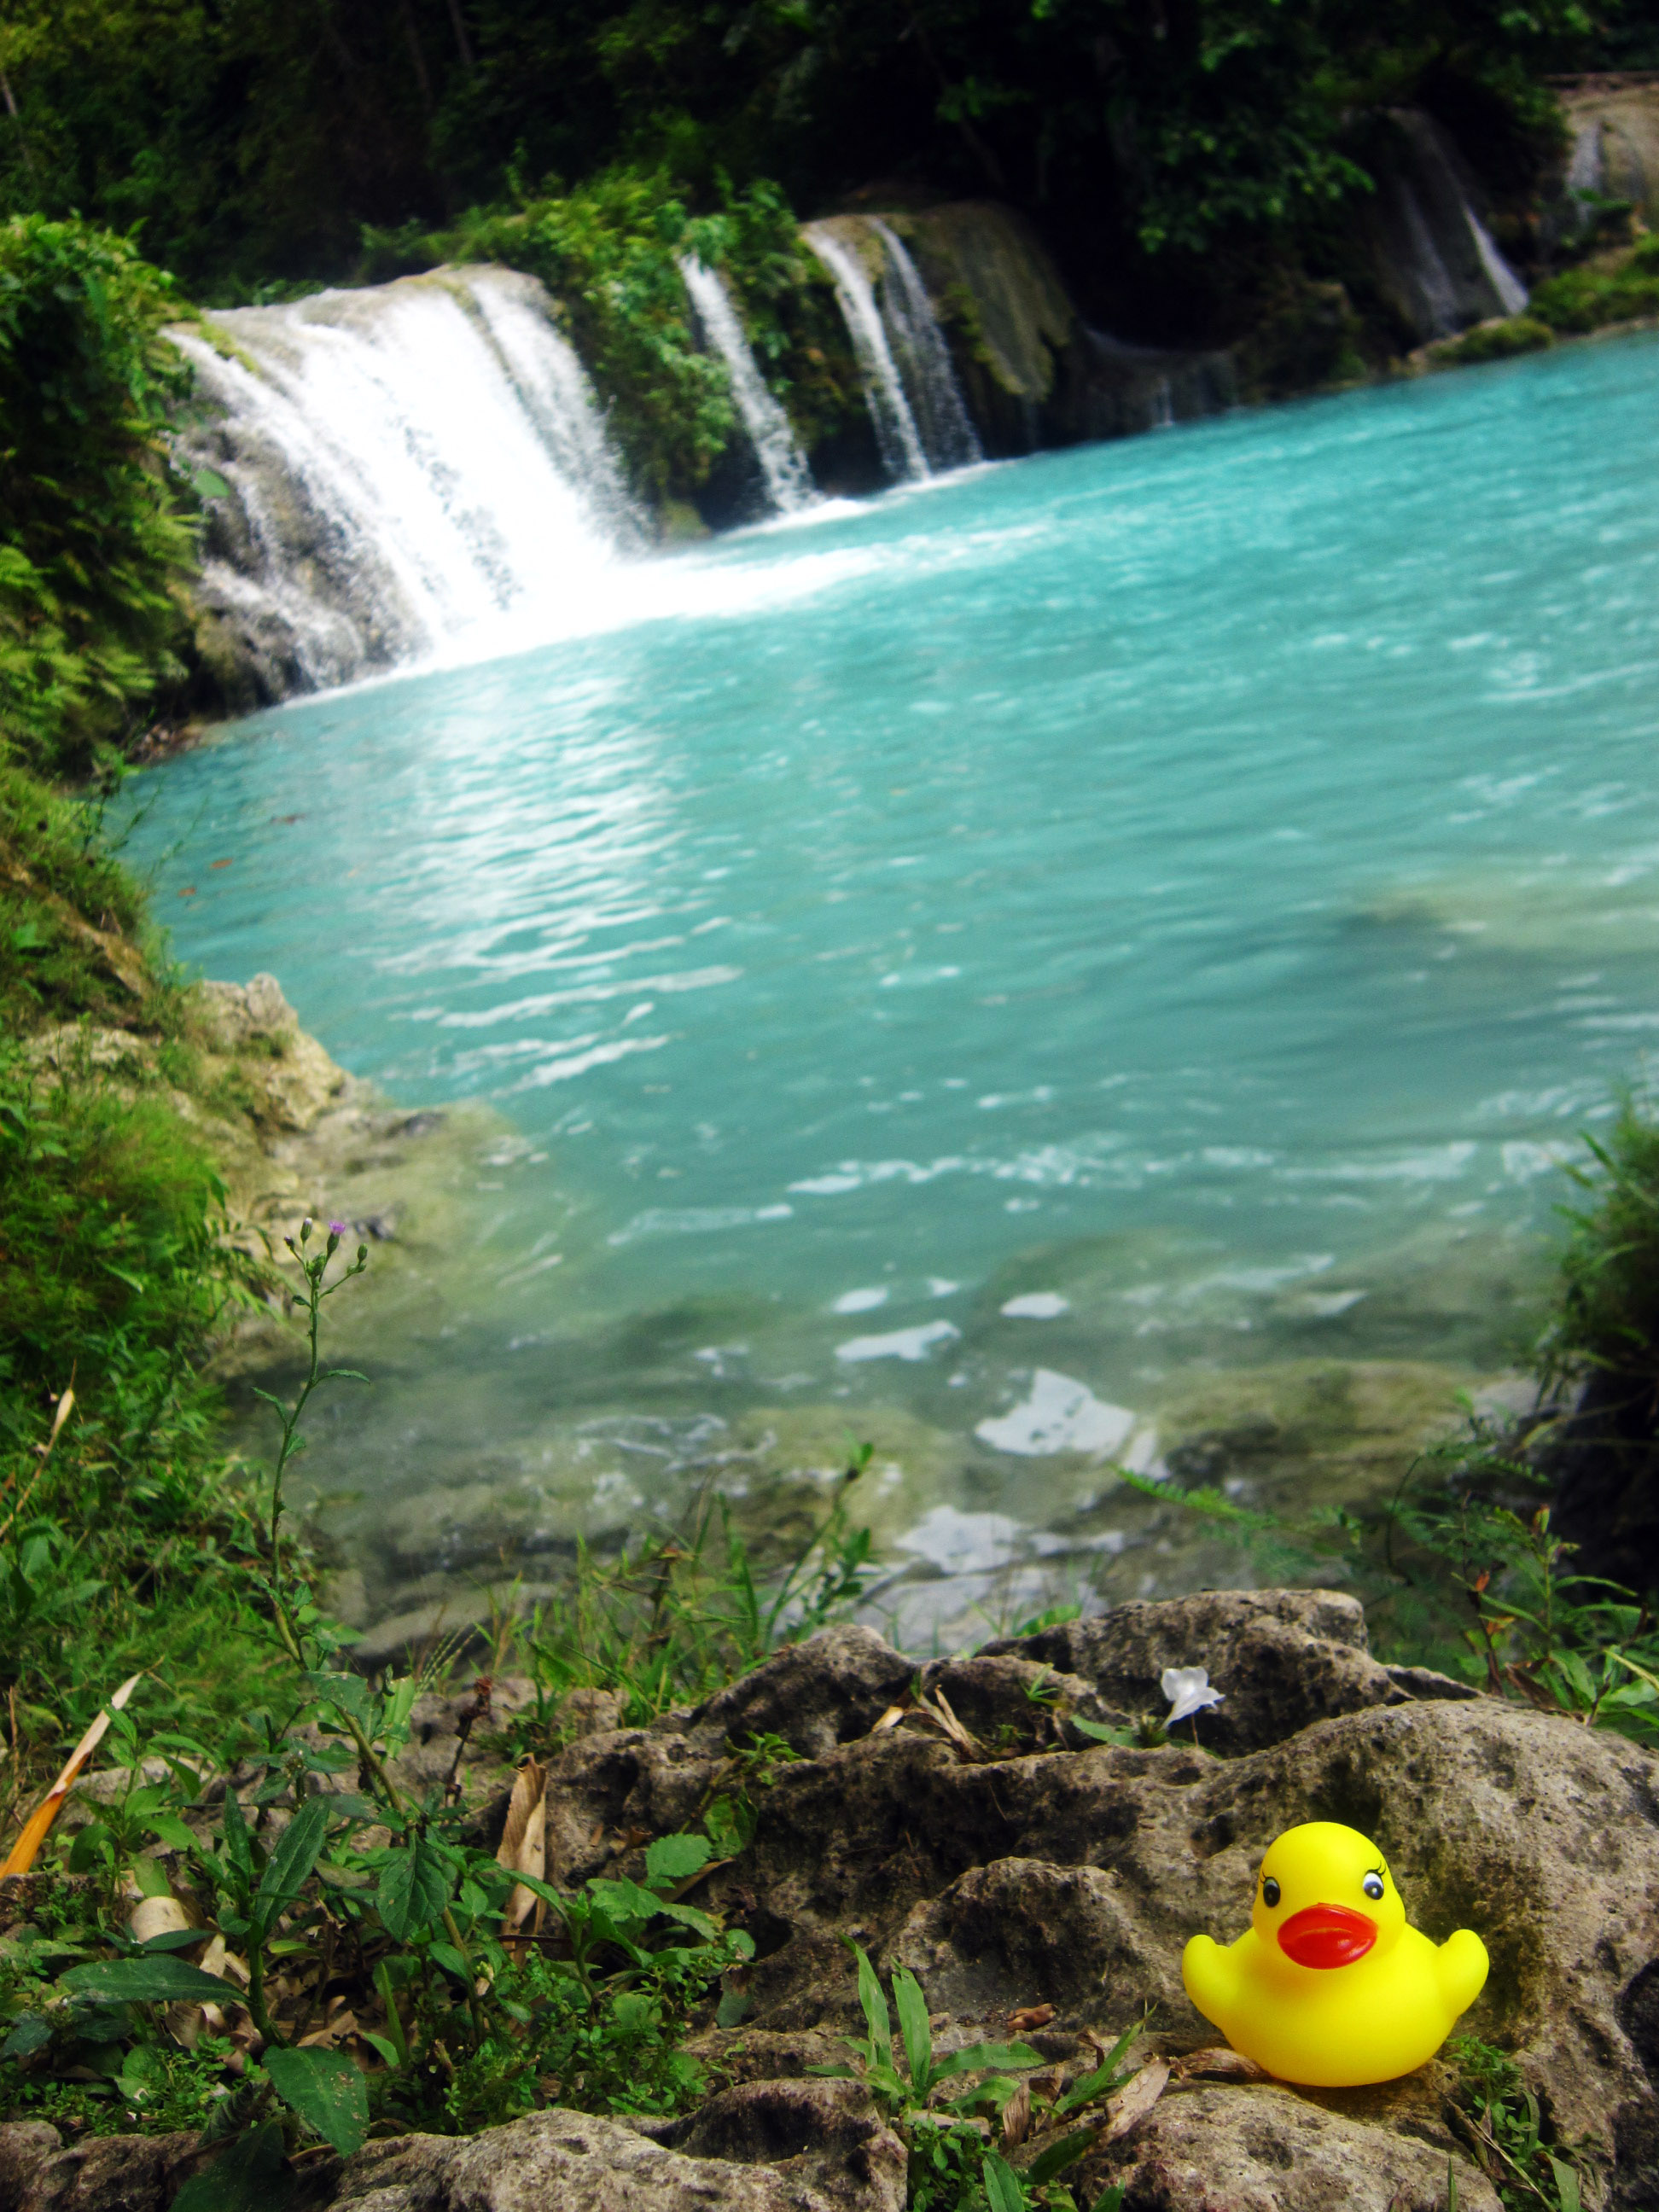 Paradise at Cambugahay Falls. Rubber ducky not included.